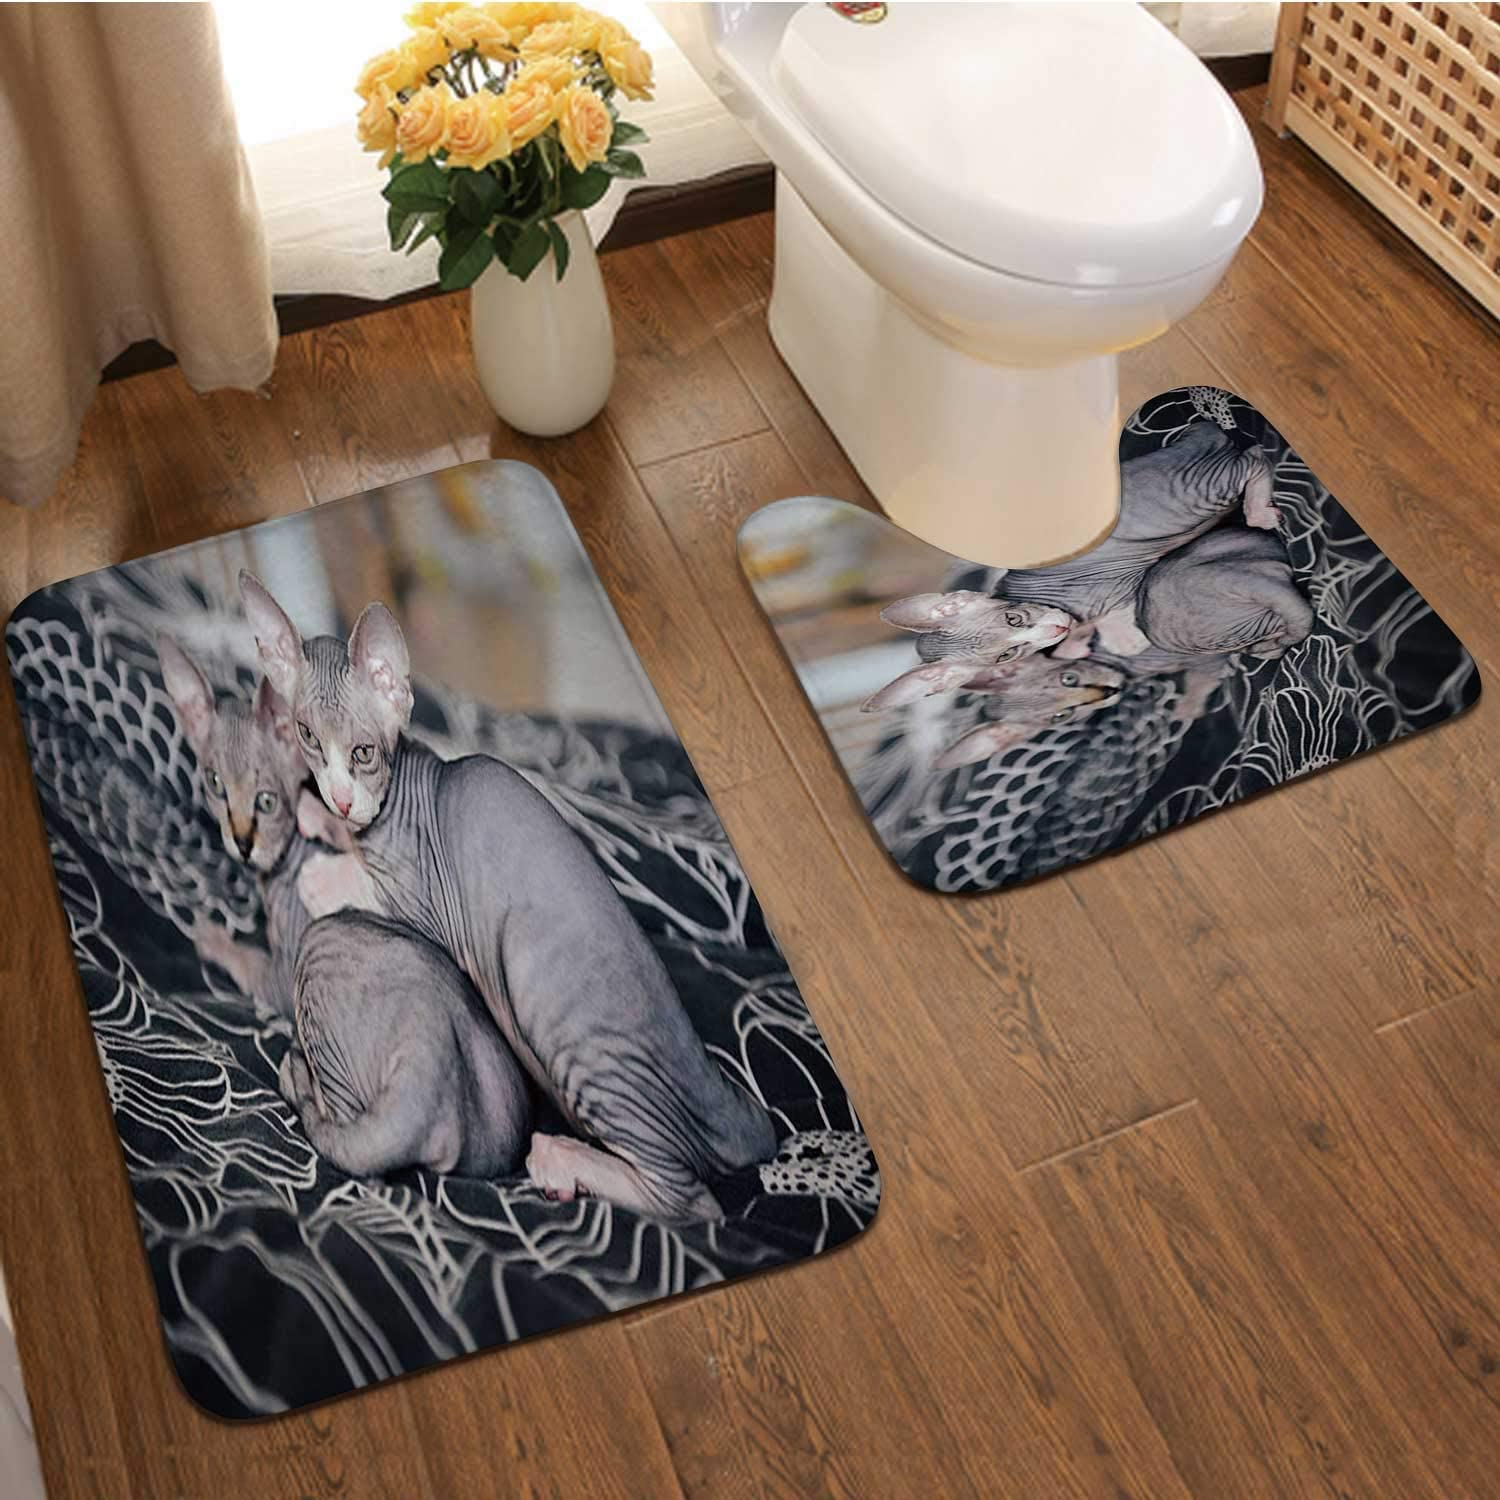 Sphinx cat ling with his Brothers Sphnx Hairless Cat,Bathroom Bath Mat Set, Soft PNon-Skid Shower Rug +Toilet Mat Domestic Cat